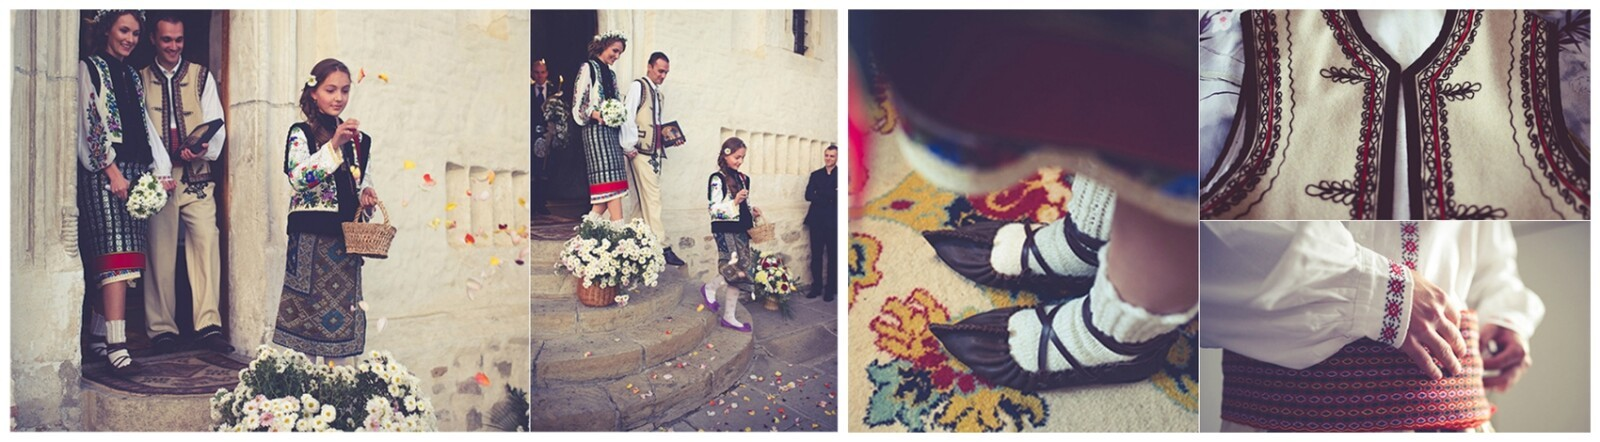 Romania wedding, flowers, emotions, little girl, pureness, Pure Romania, wedding, Traditions, Photo copyright Ovidiu Lesan